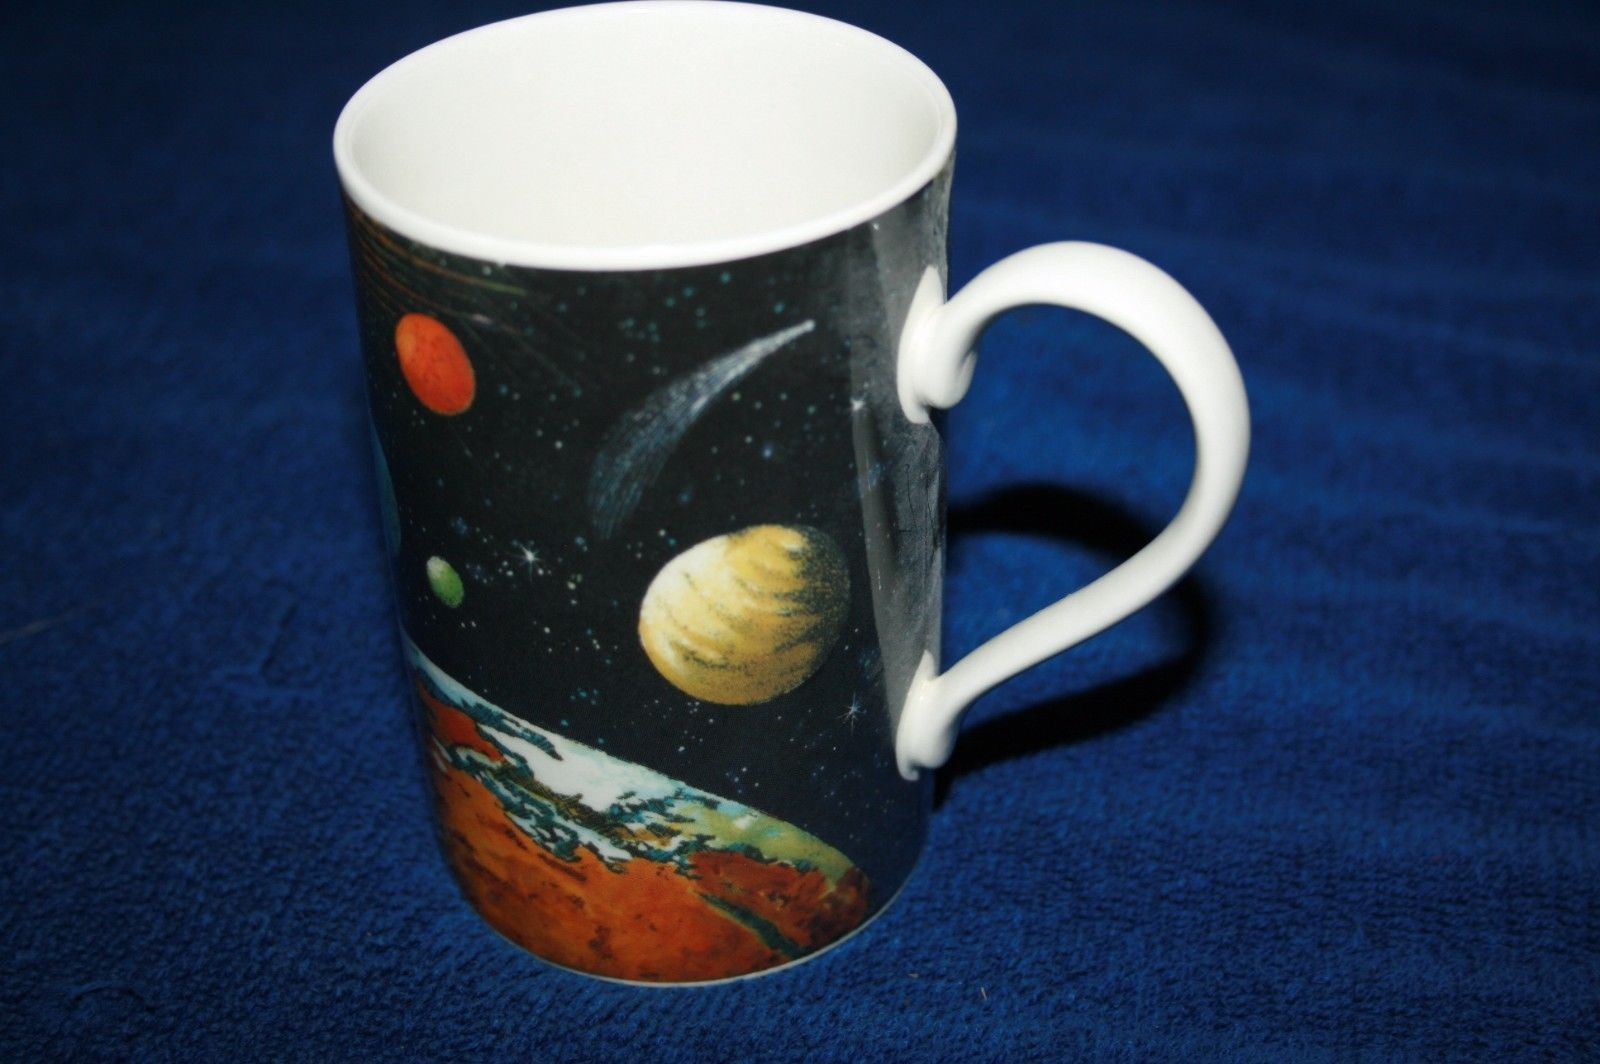 solar system cups - photo #17